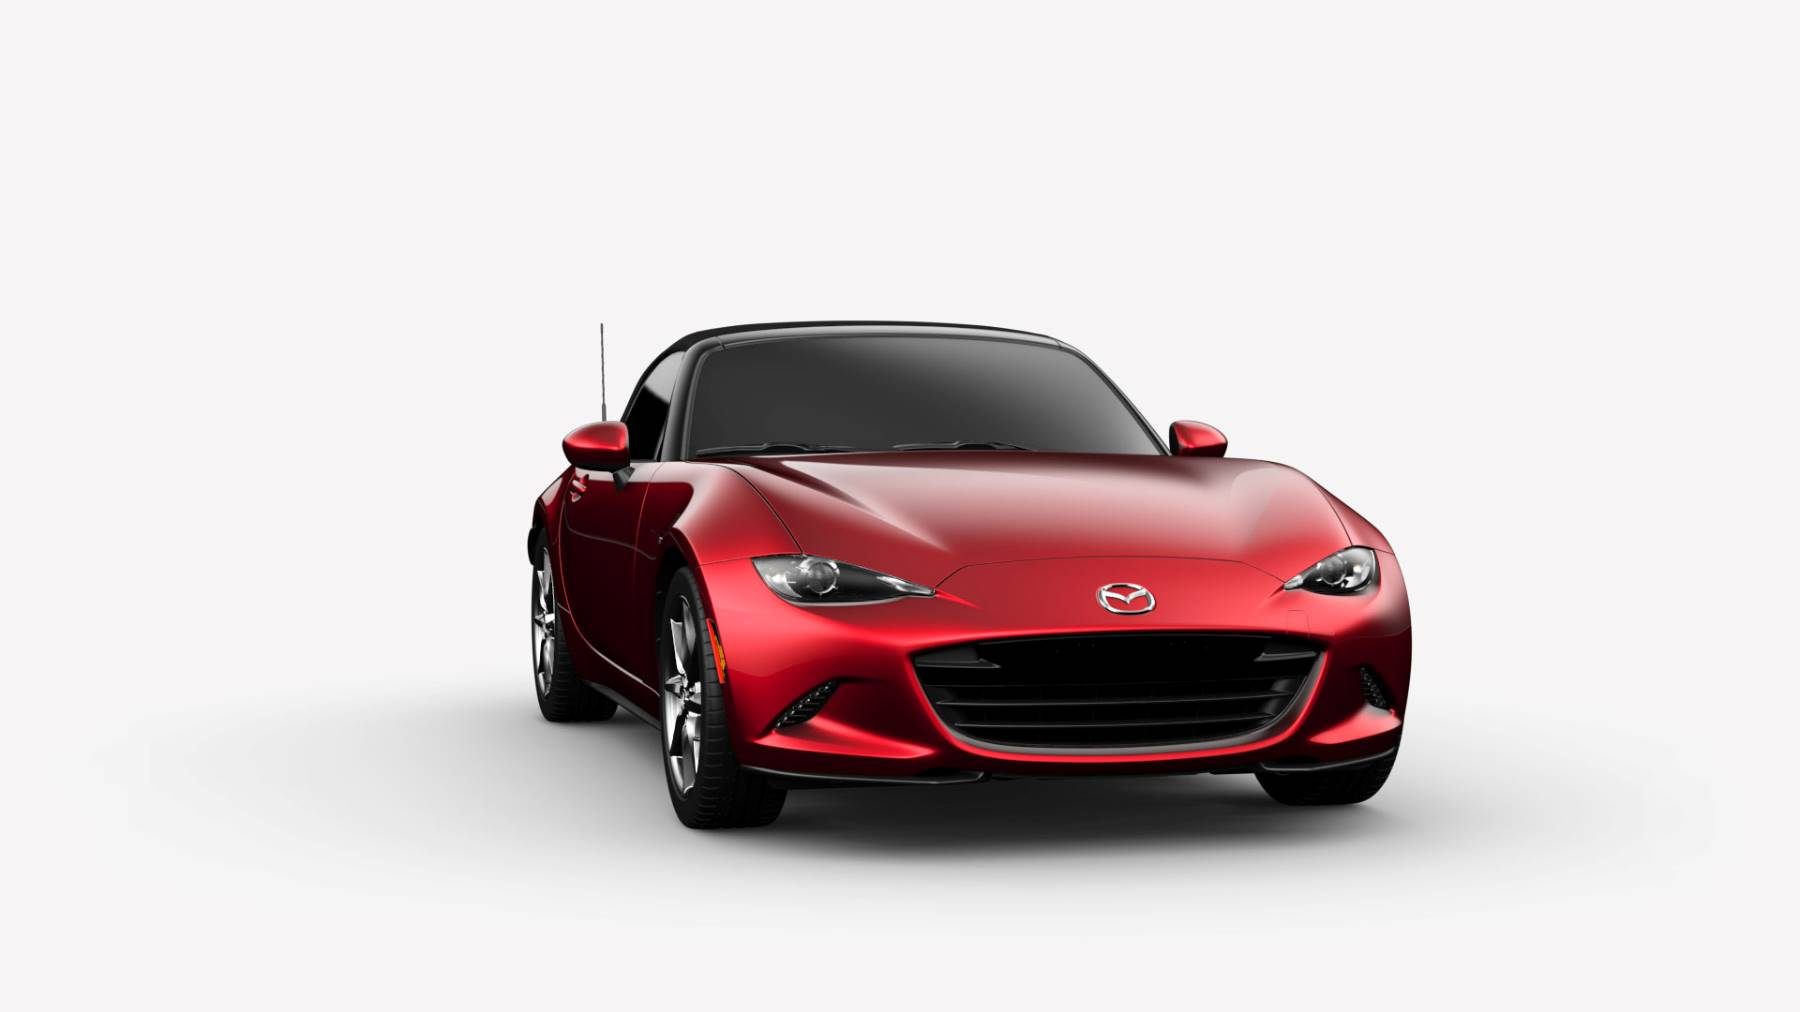 https://www.mazdausa.com/siteassets/vehicles/2018/mx5-st/360-studio/soul-red-crystal-metallic/2018-soul-red-crystal-metallic-360-mx5-st-22.jpg?w=1480